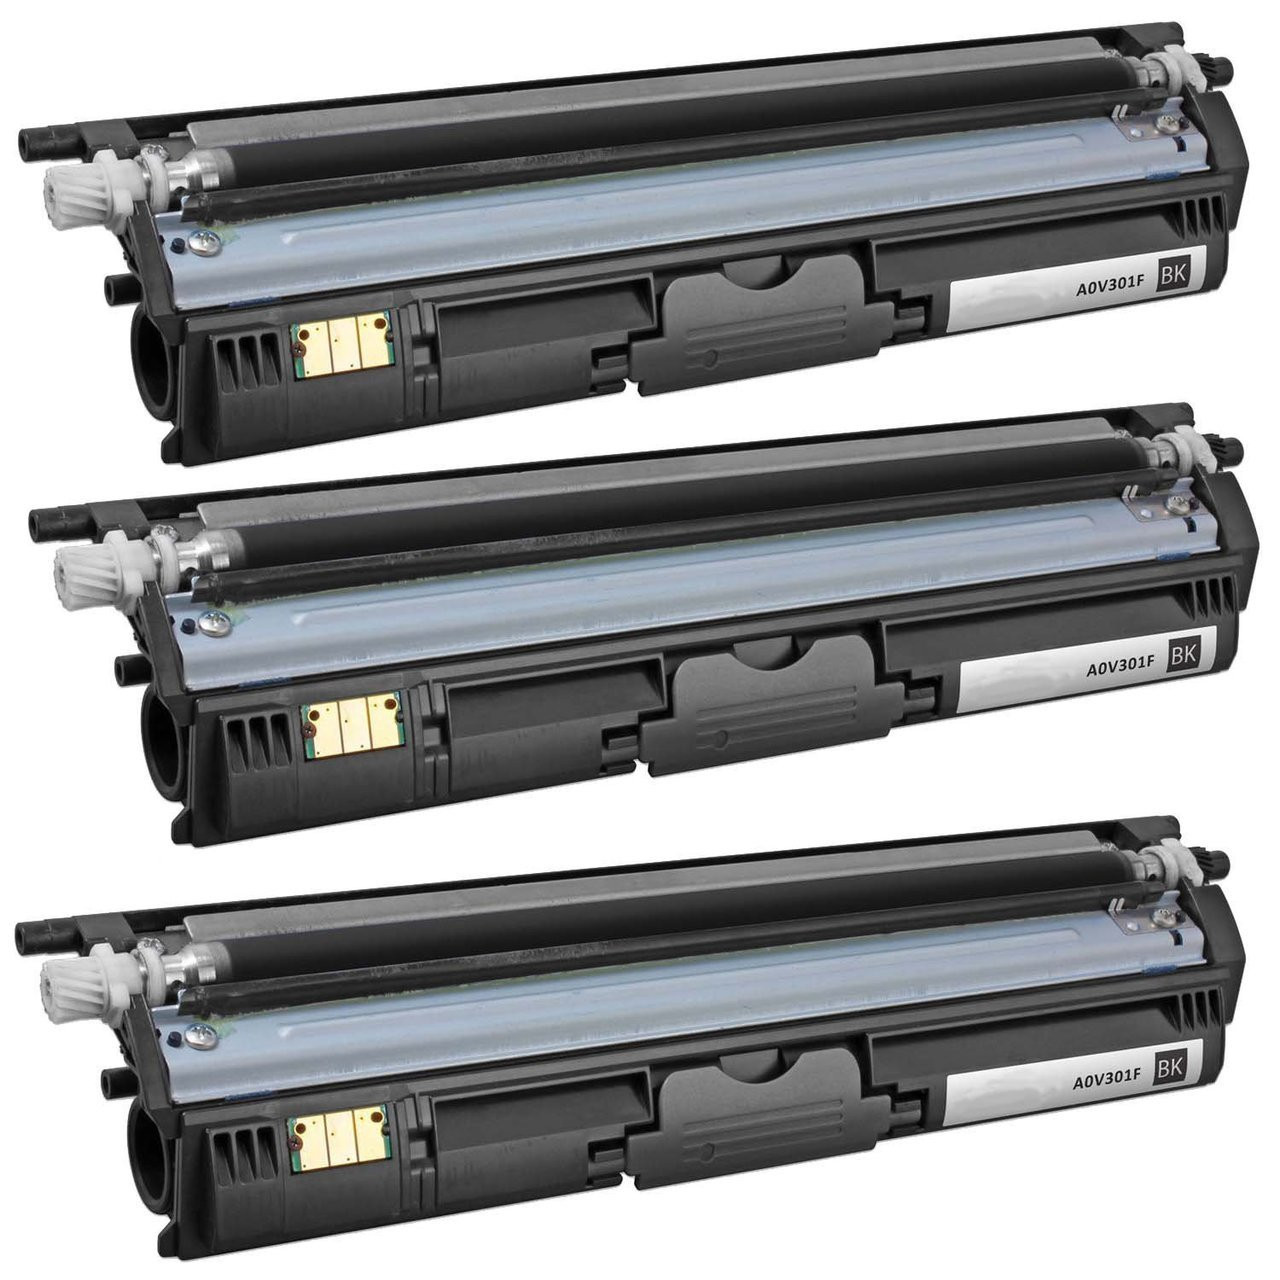 Yellow,1-Pack AB Volts Compatible Toner Cartridge Replacement for Konica-Minolta A0V306F for Magicolor 1600 1600W 1650EN 1680MF 1690MF 1690MFDD 1690MFT 1690MFDT